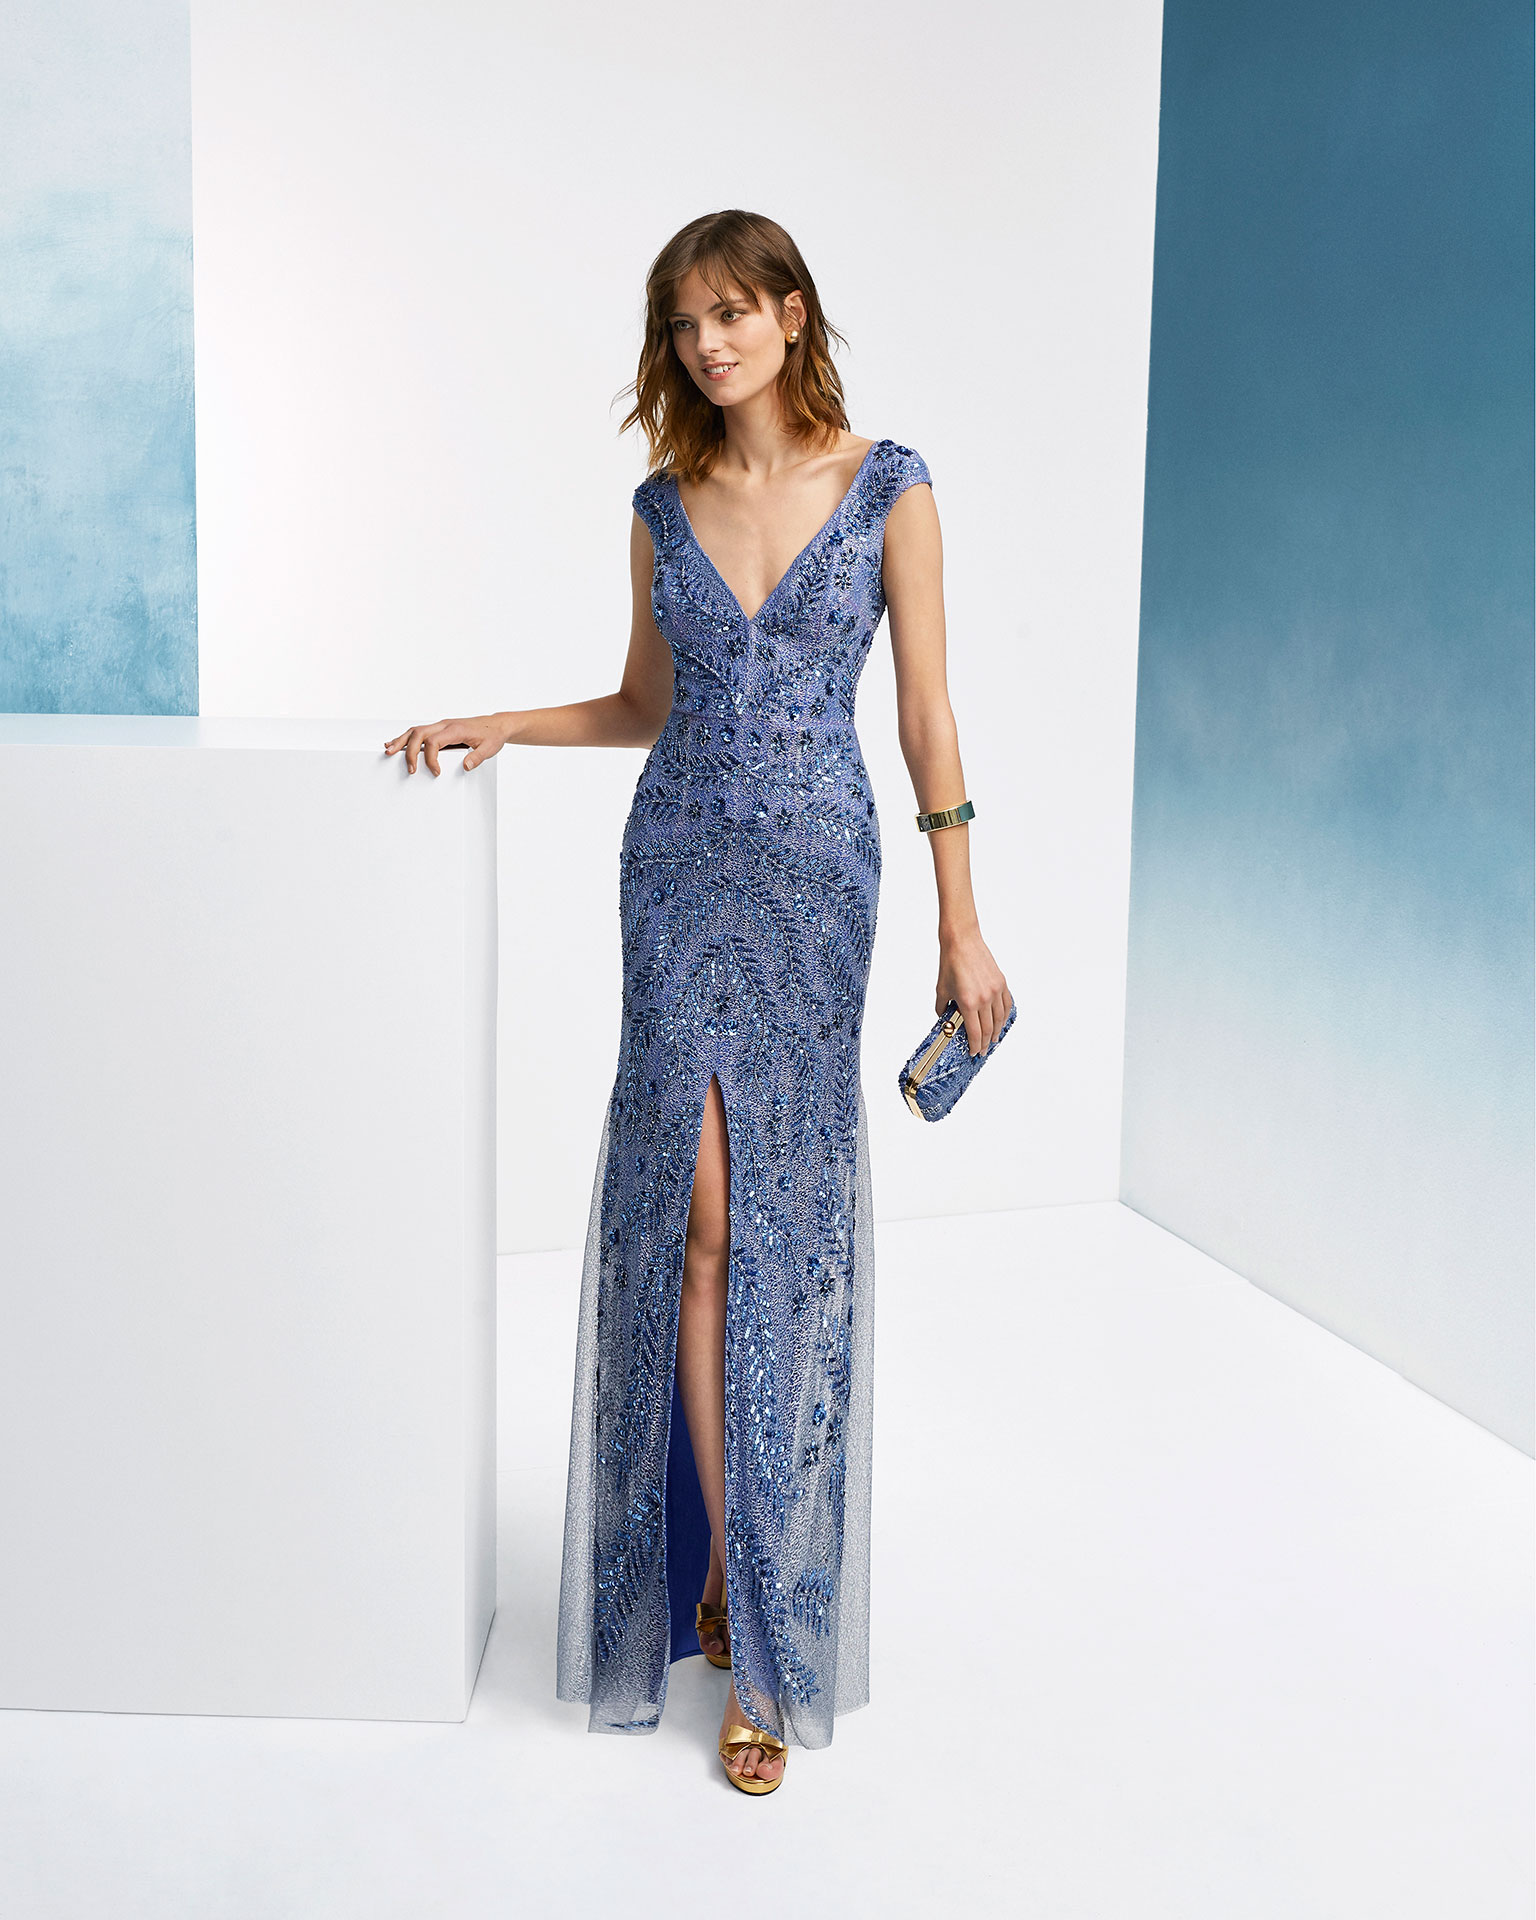 Beaded cocktail dress. With deep-plunge neckline, short sleeves and skirt with front slit. 2019 FIESTA AIRE BARCELONA Collection.